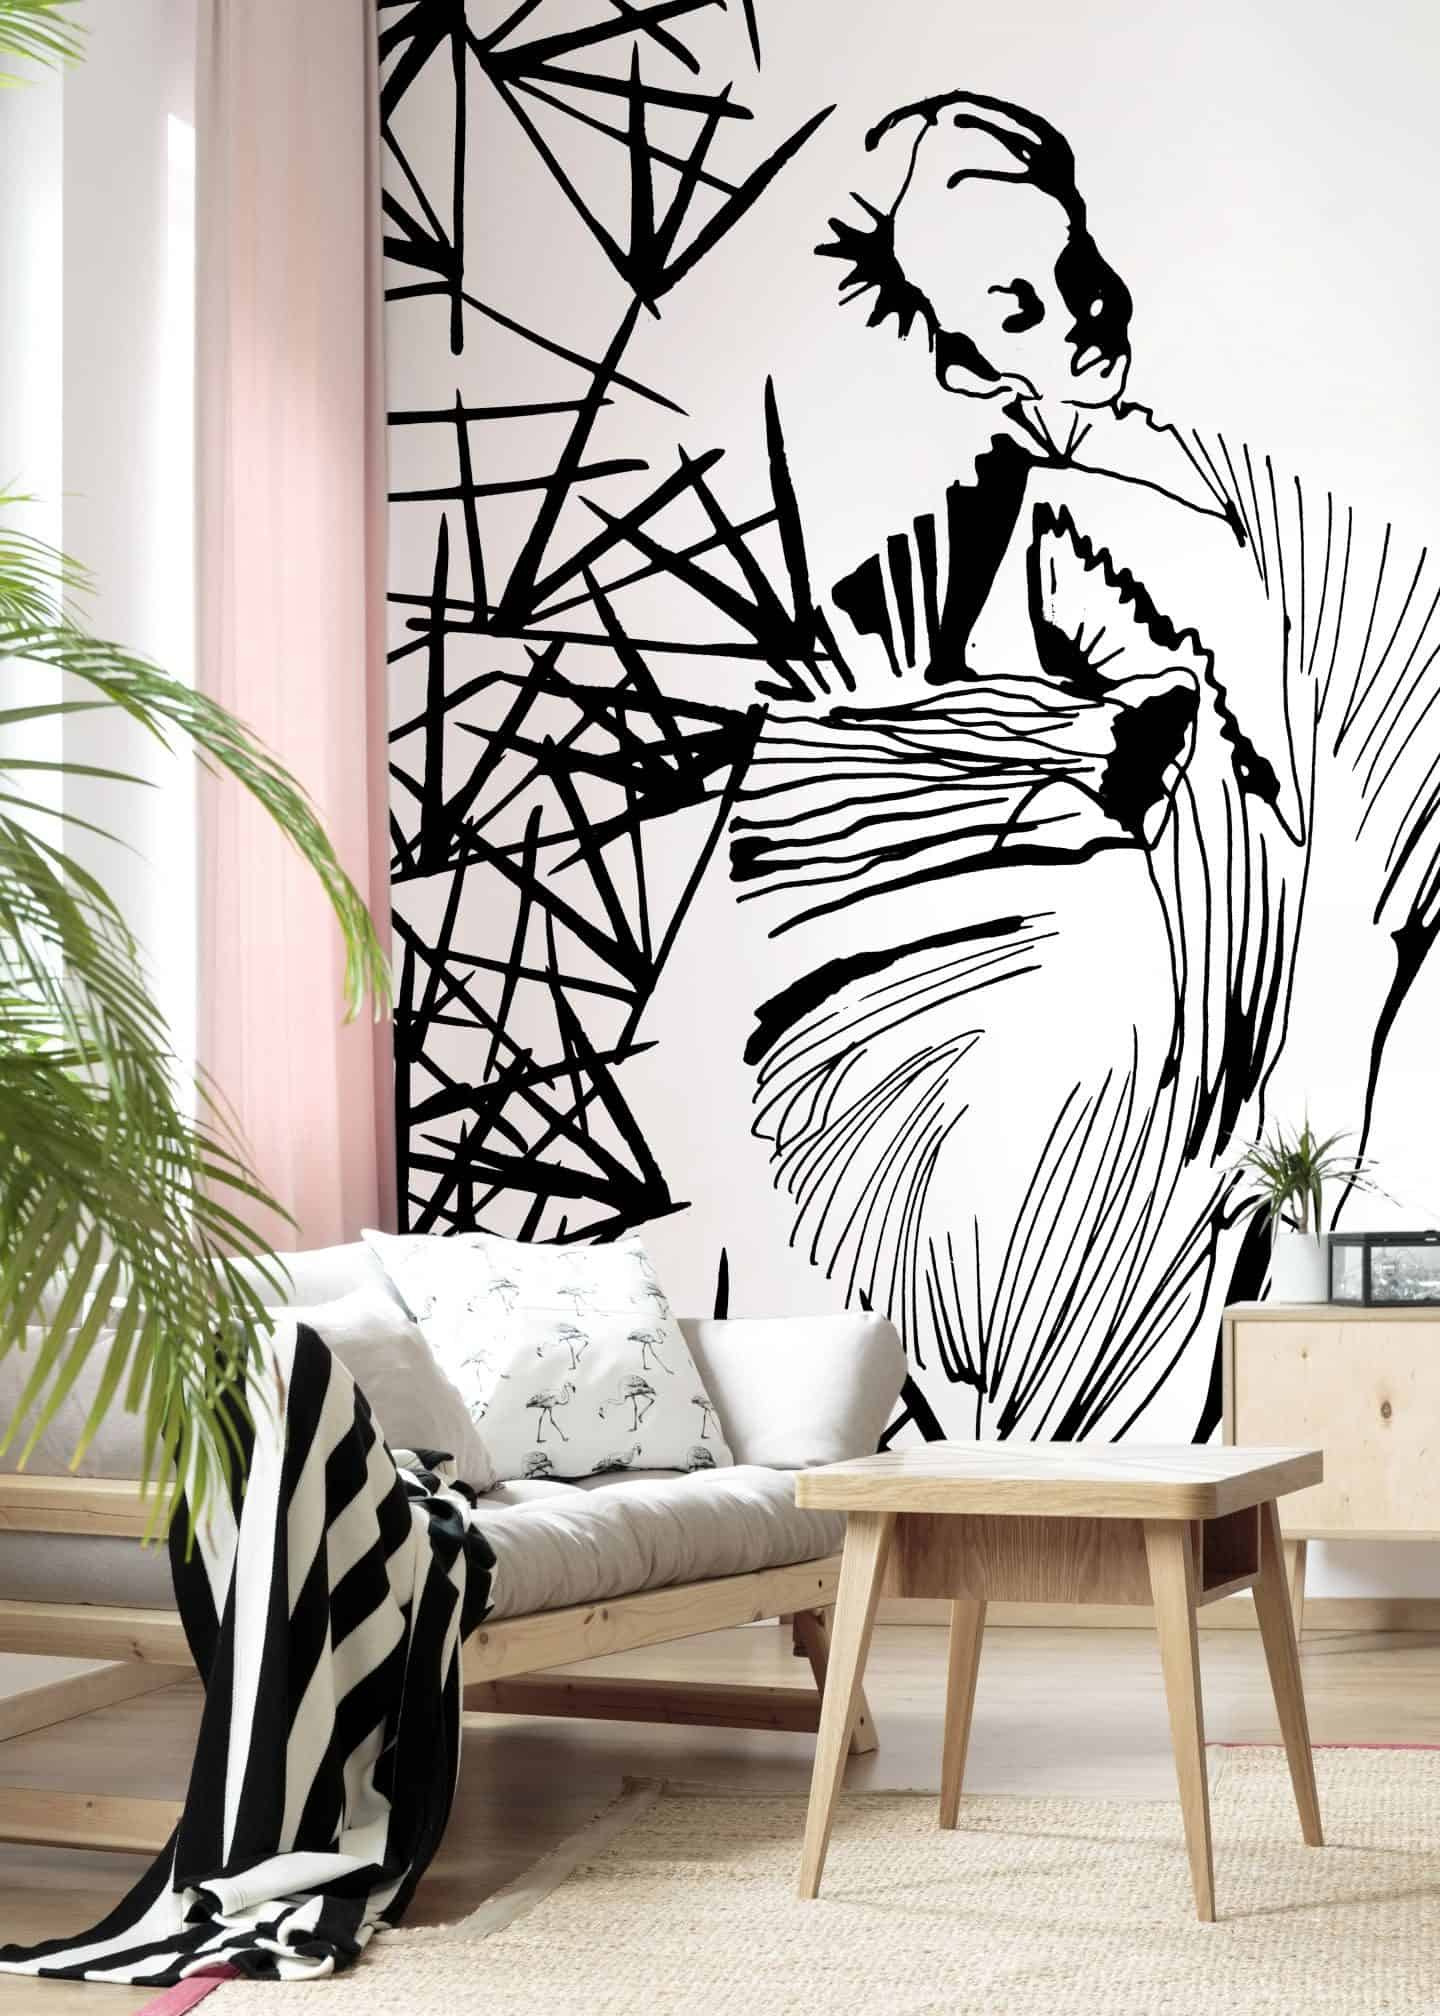 Pleated Beauty, a black and white fashion illustration by Stina Wirsén available as a illustrated wallpaper from Photowall.